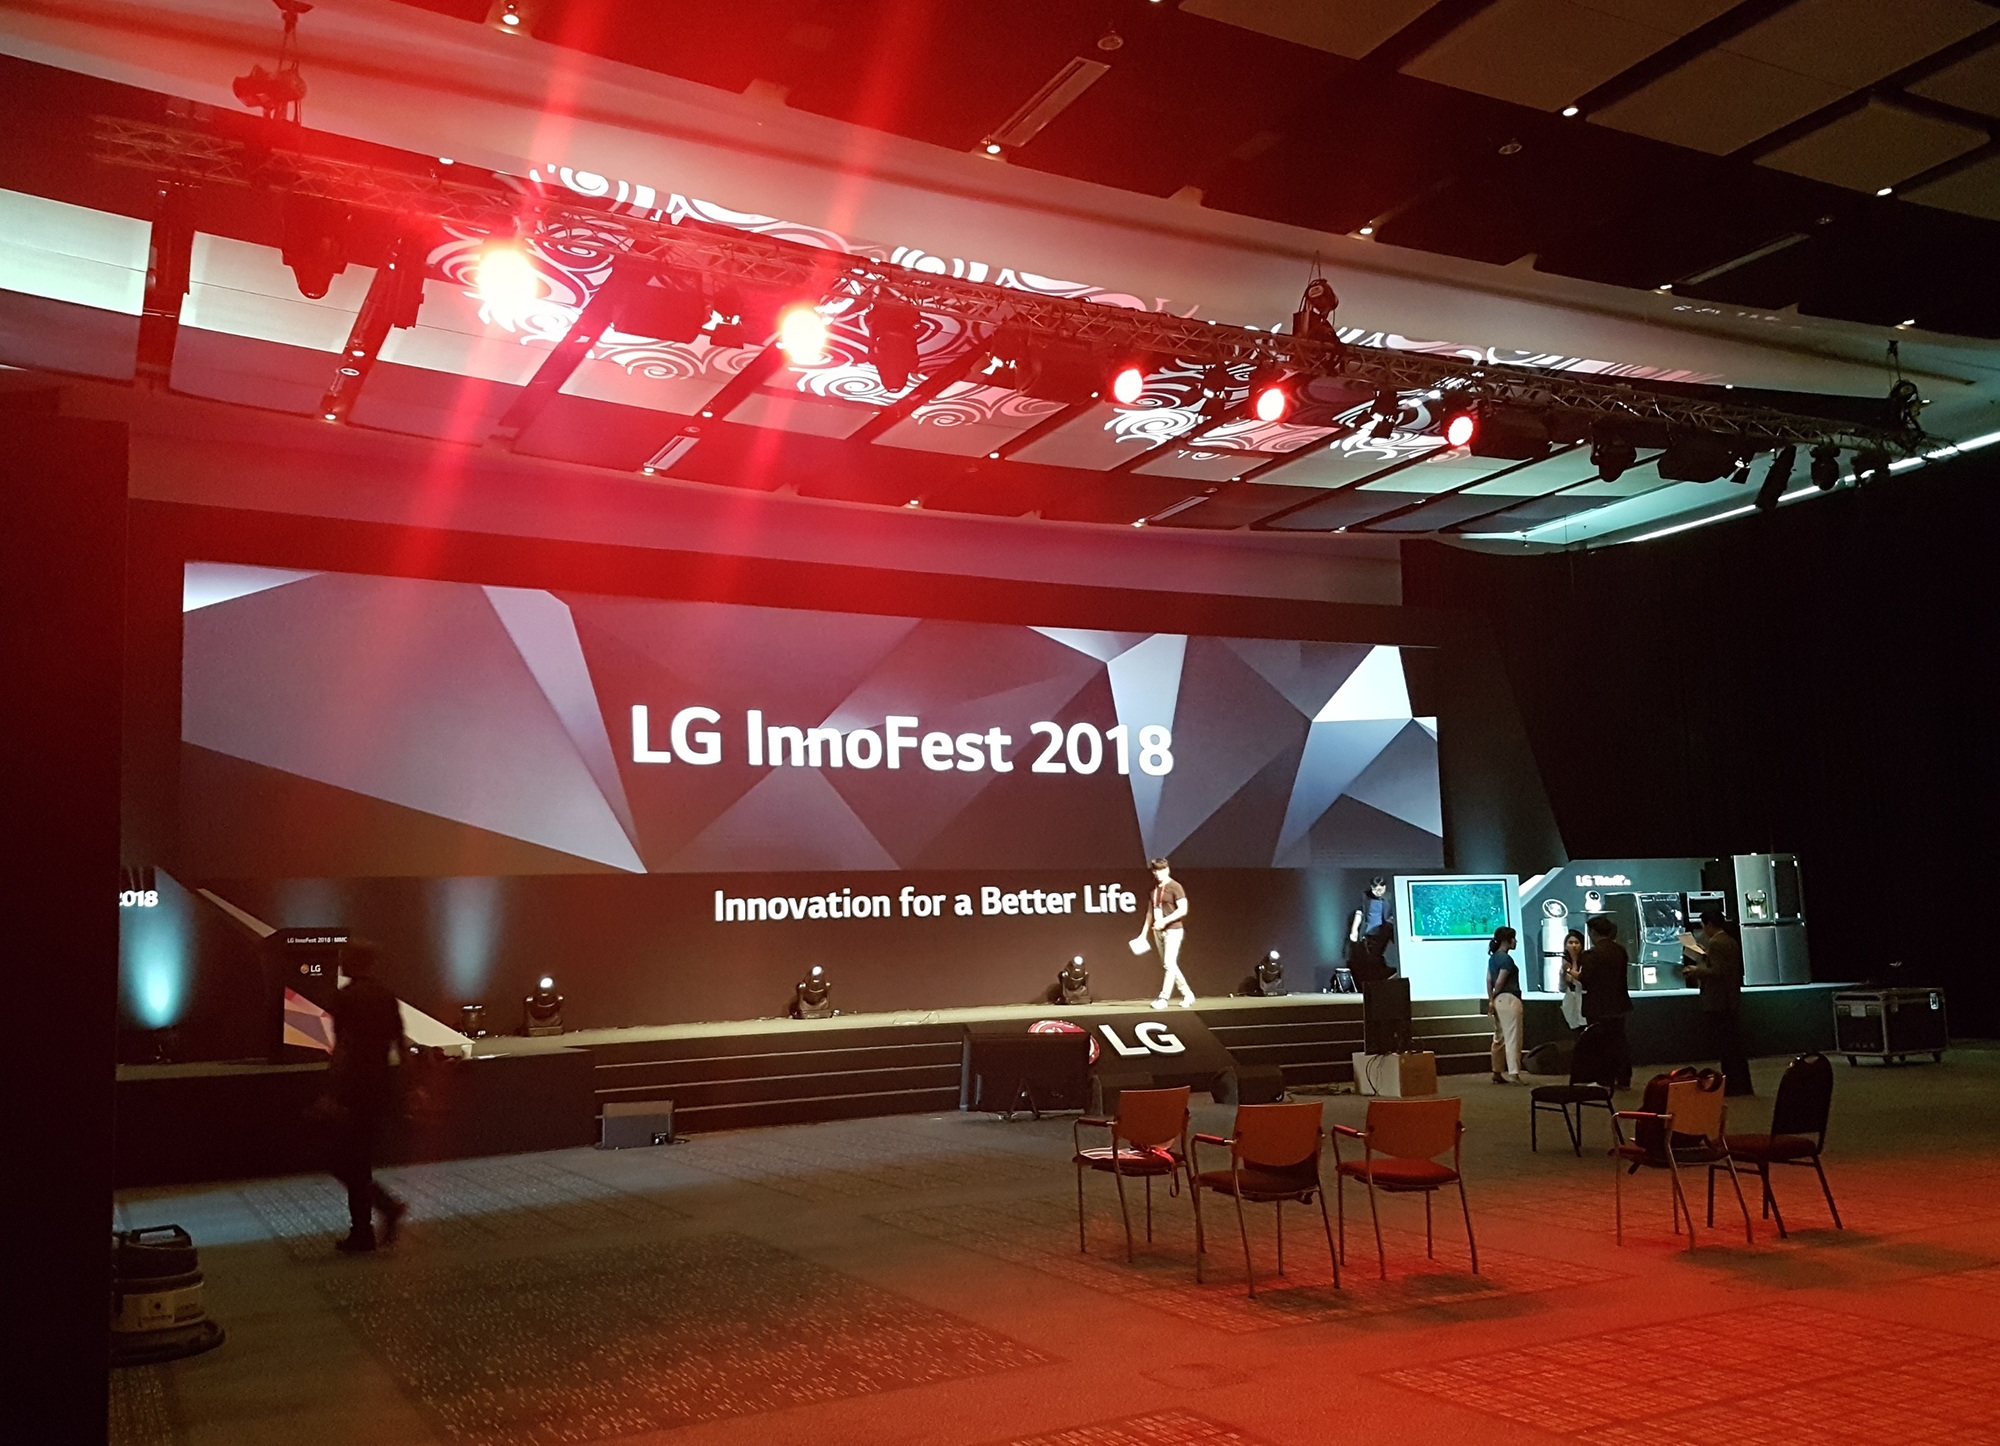 Folio provided the Arabic simultaneous interpreters for the LG InnoFest 2018 conference held at the CTICC in Cape Town.